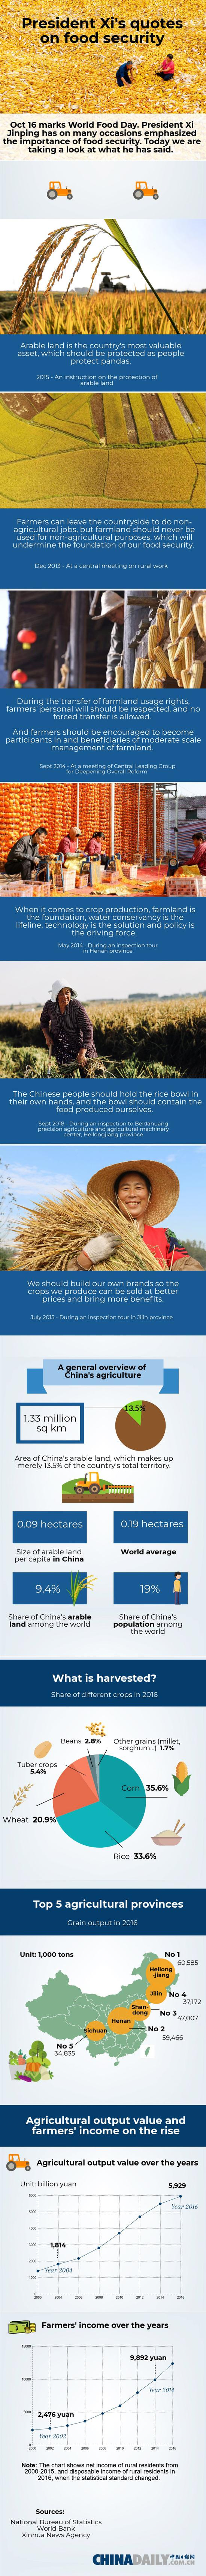 President Xi's quotes on food security